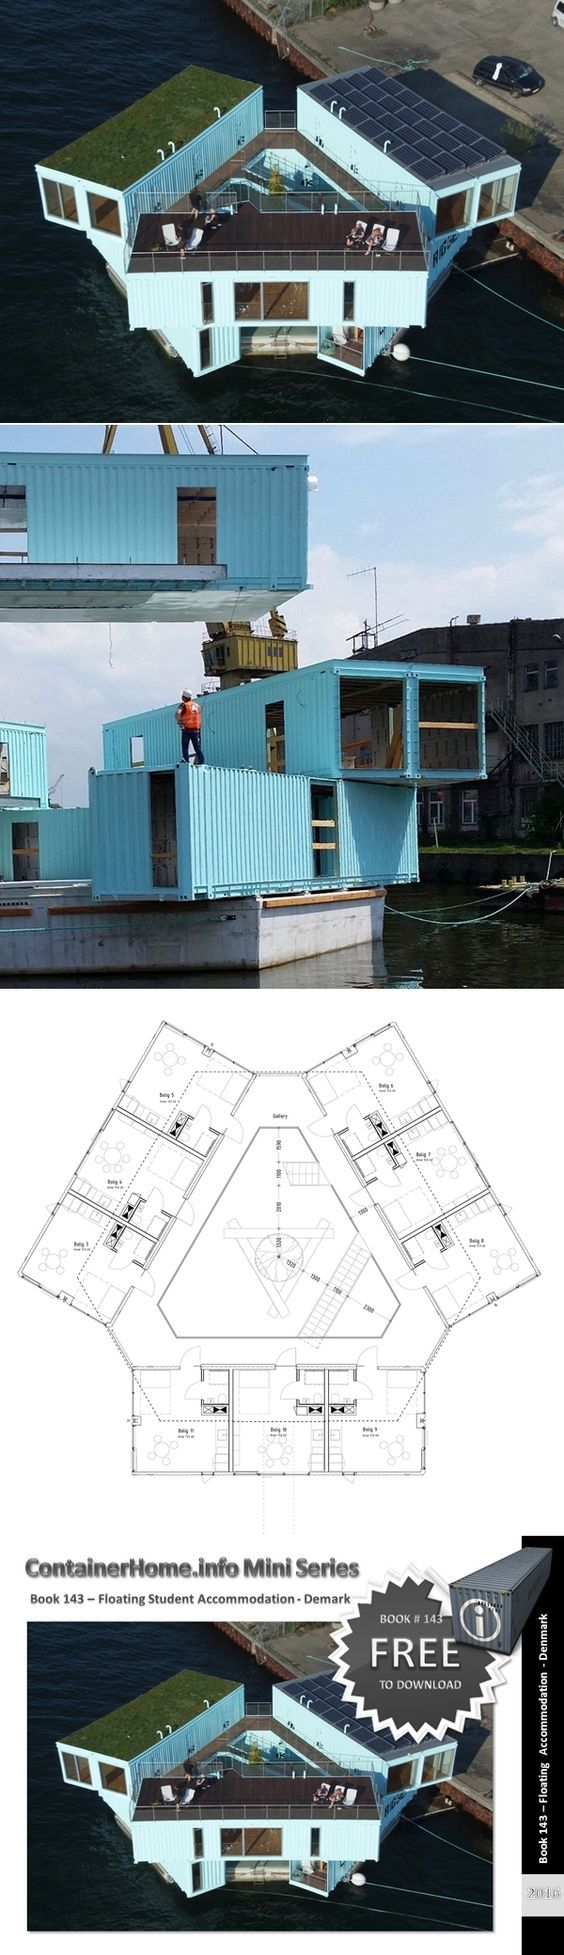 Shipping Container Homes Book Series – Book 143 - Shipping Container Home Plans - How to Plan, Design and Build your own House out of Cargo Containers: